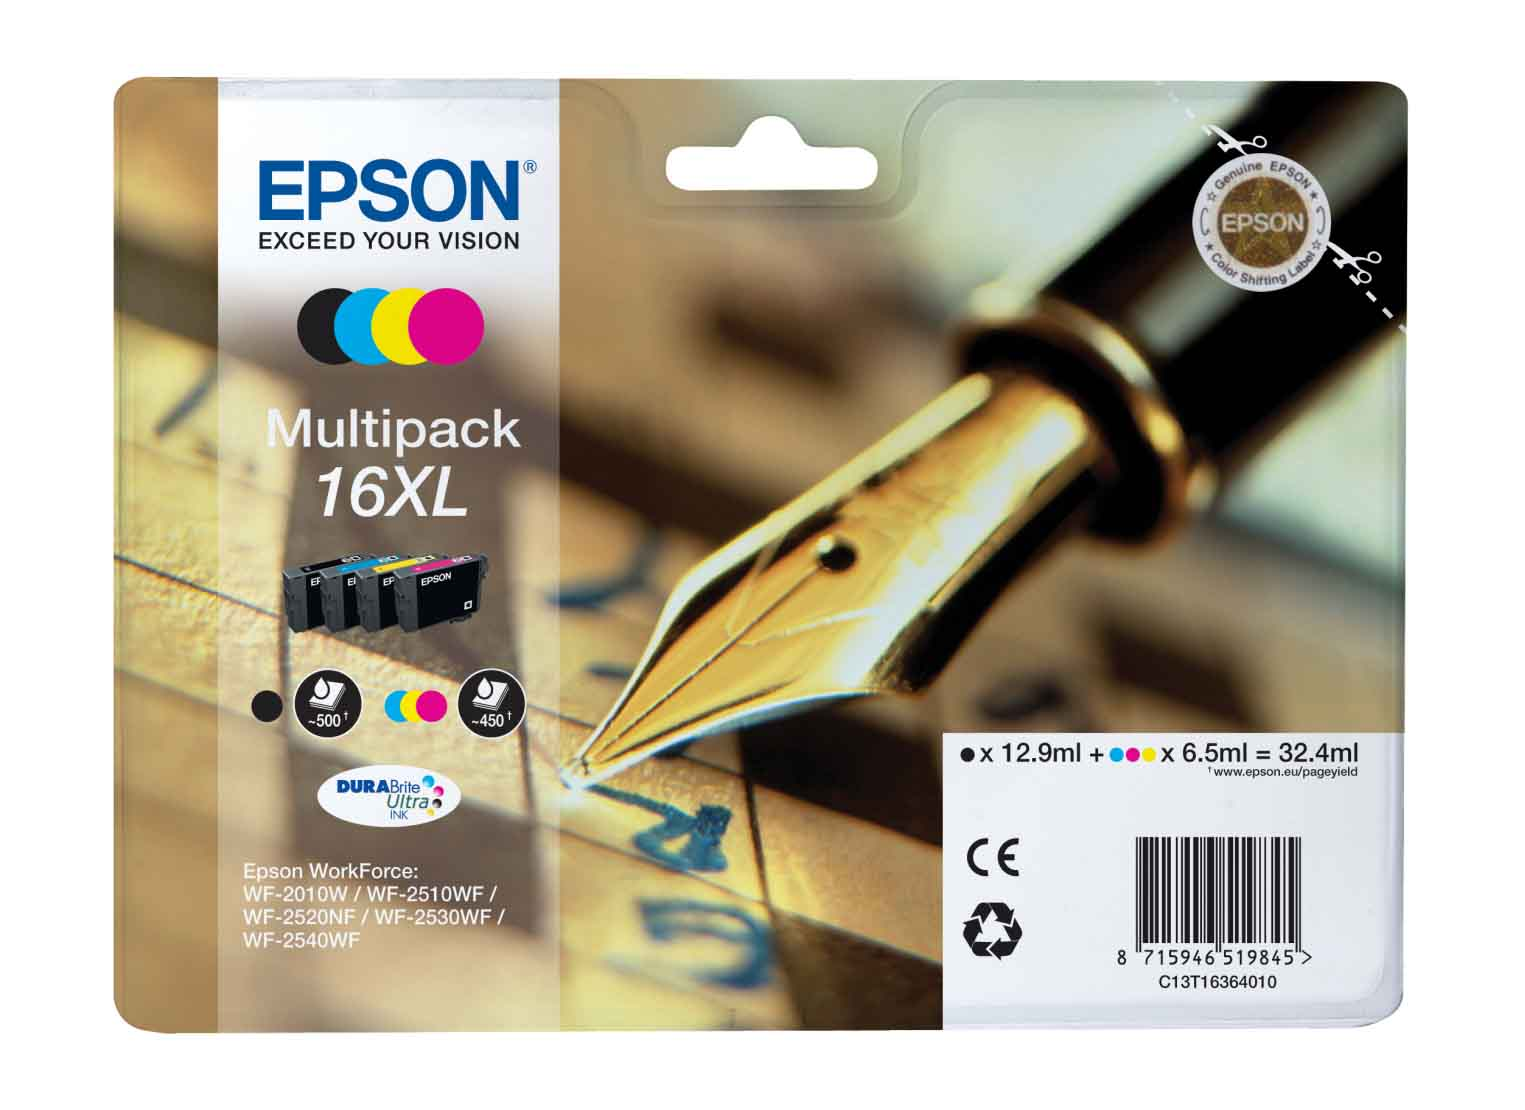 Genuine 4 Colour Epson 16XL High Capacity Ink Cartridge Multipack - (T1636 contains T1631/T1632/T1633/T1634 Pen and Crossword Inkjet Printer Cartridges)